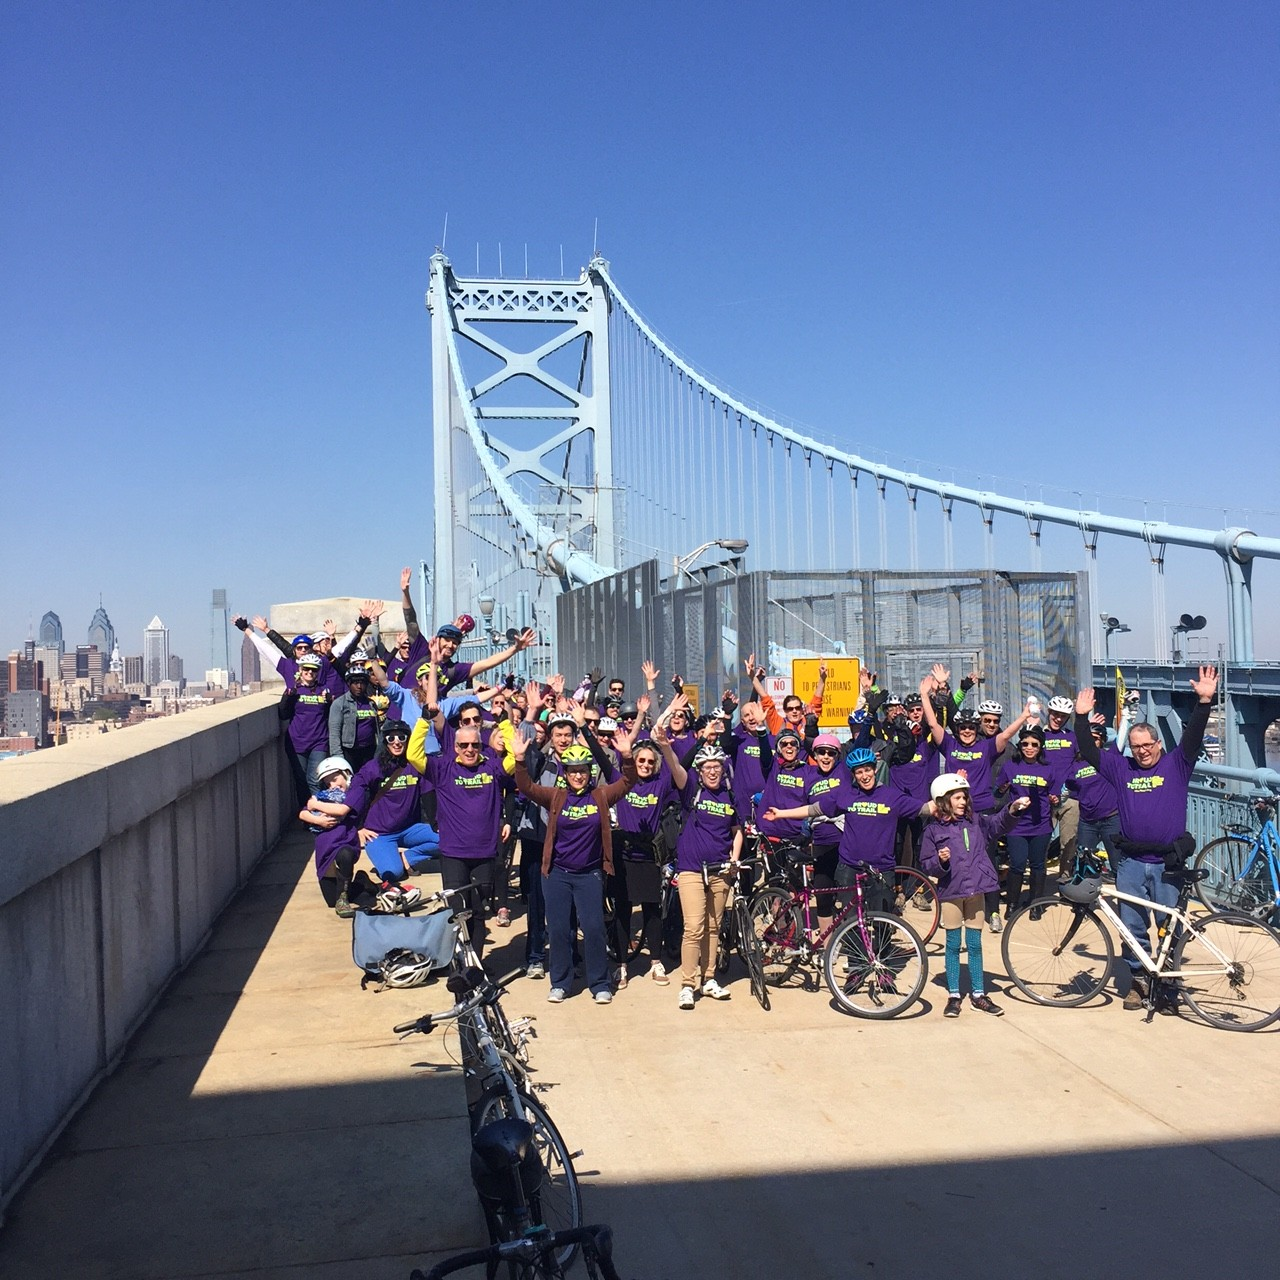 Those who took part in the ride across the Benjamin Franklin Bridge before Friday's opening ceremony.